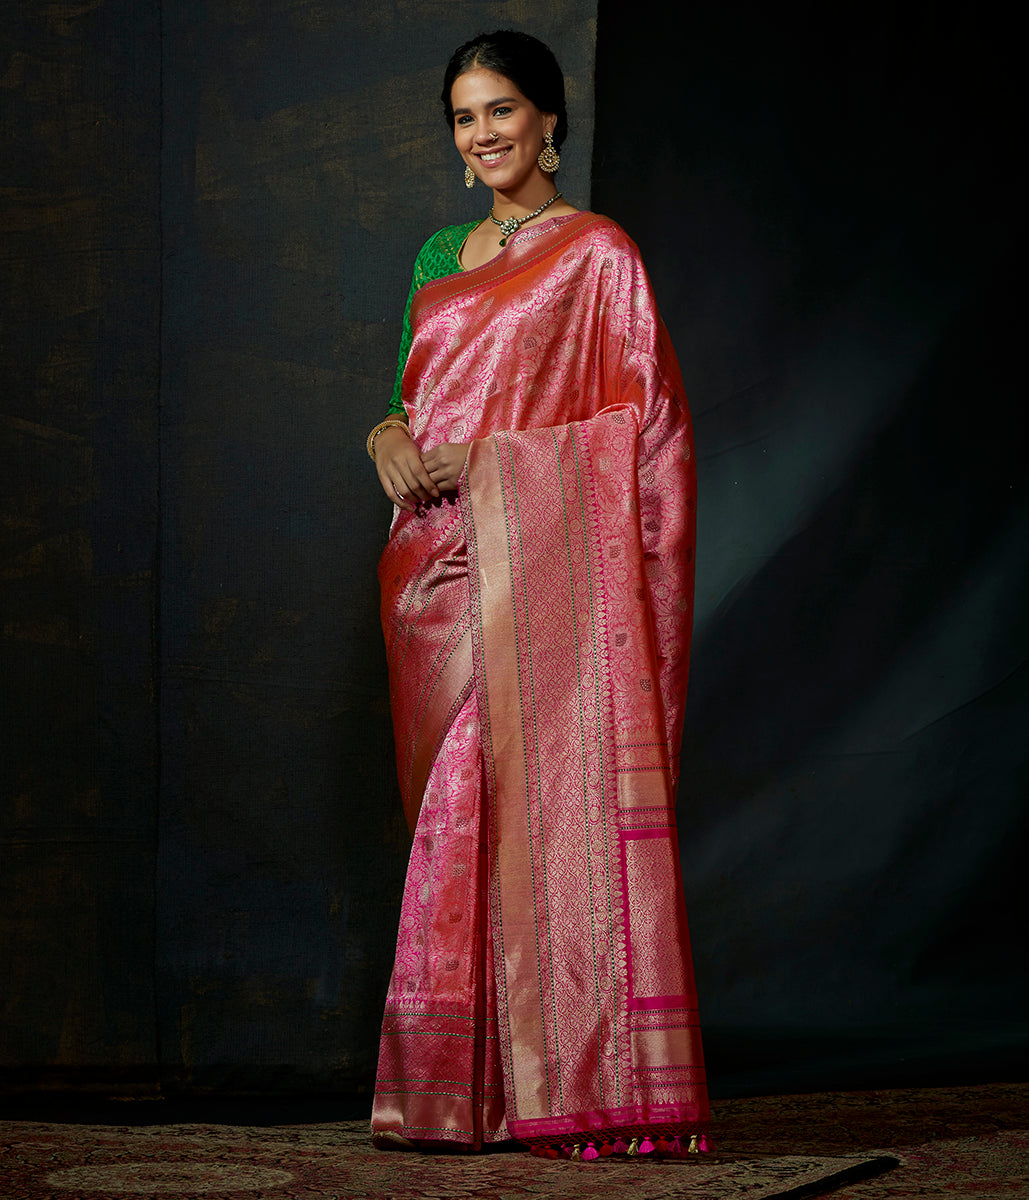 Pink and gold meenakari kimkhab saree with meenakari